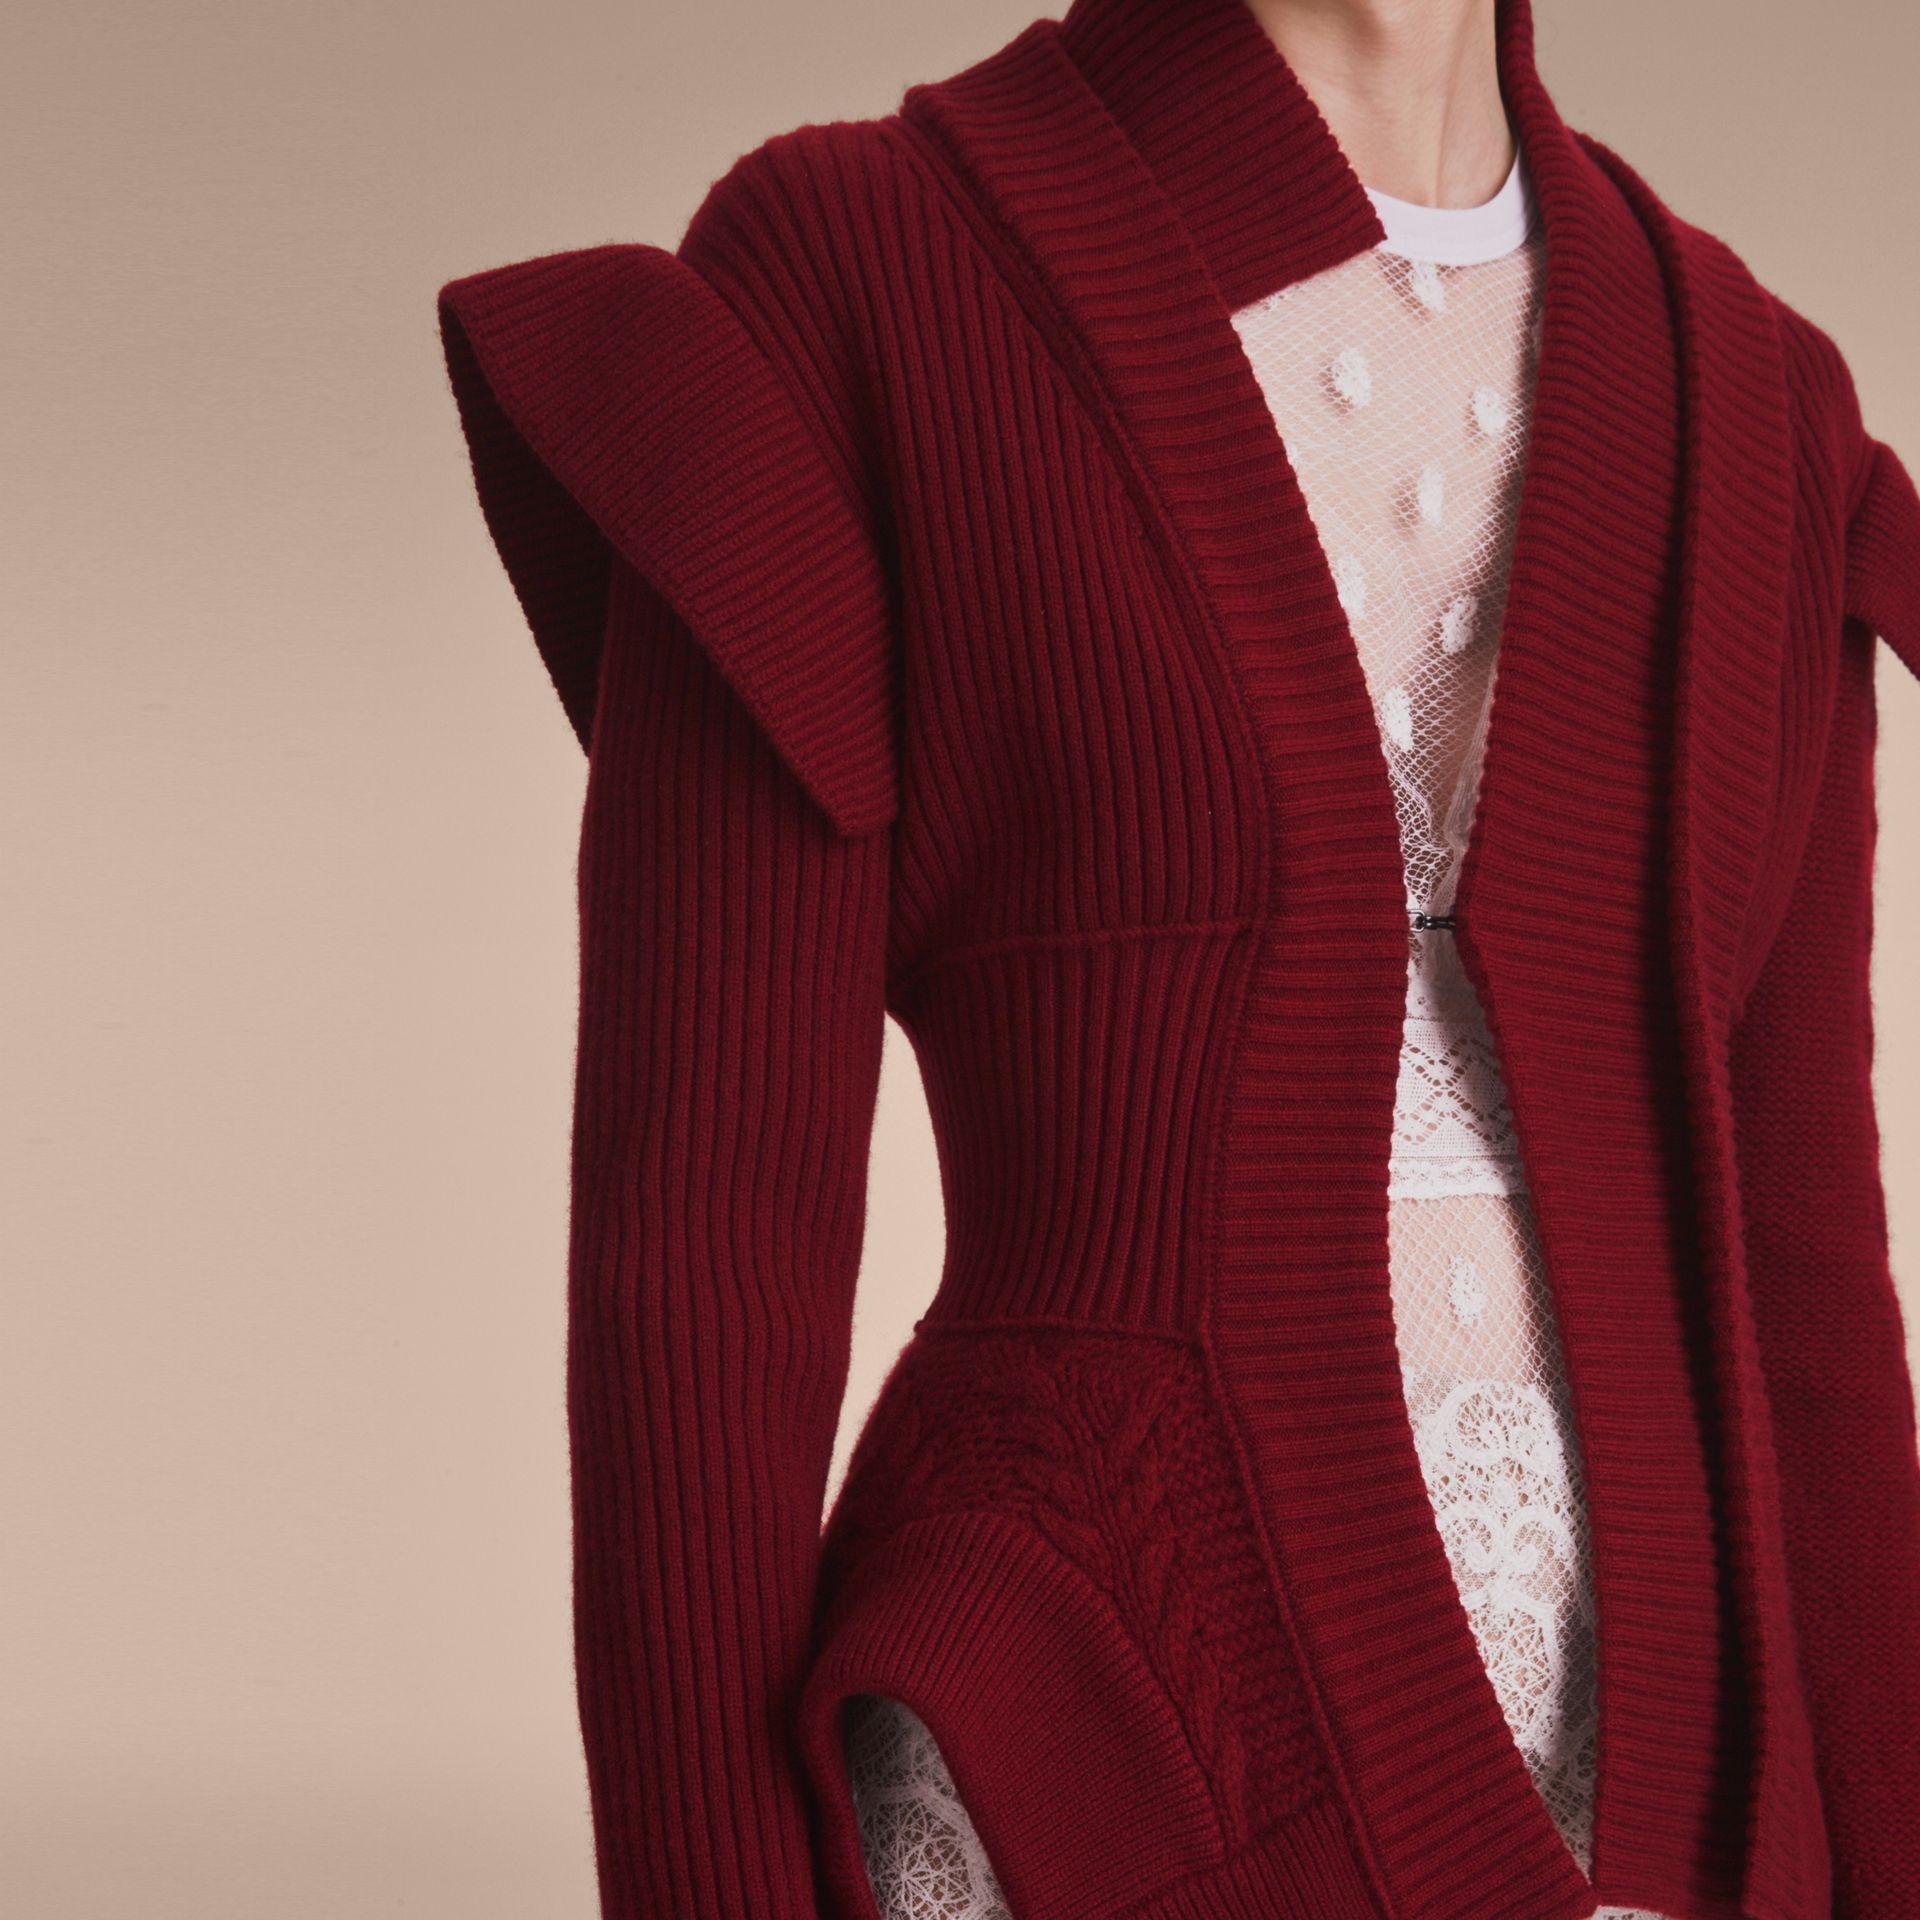 Knitted Wool Cashmere Military-inspired Jacket in Bordeaux - Women | Burberry Australia - gallery image 5